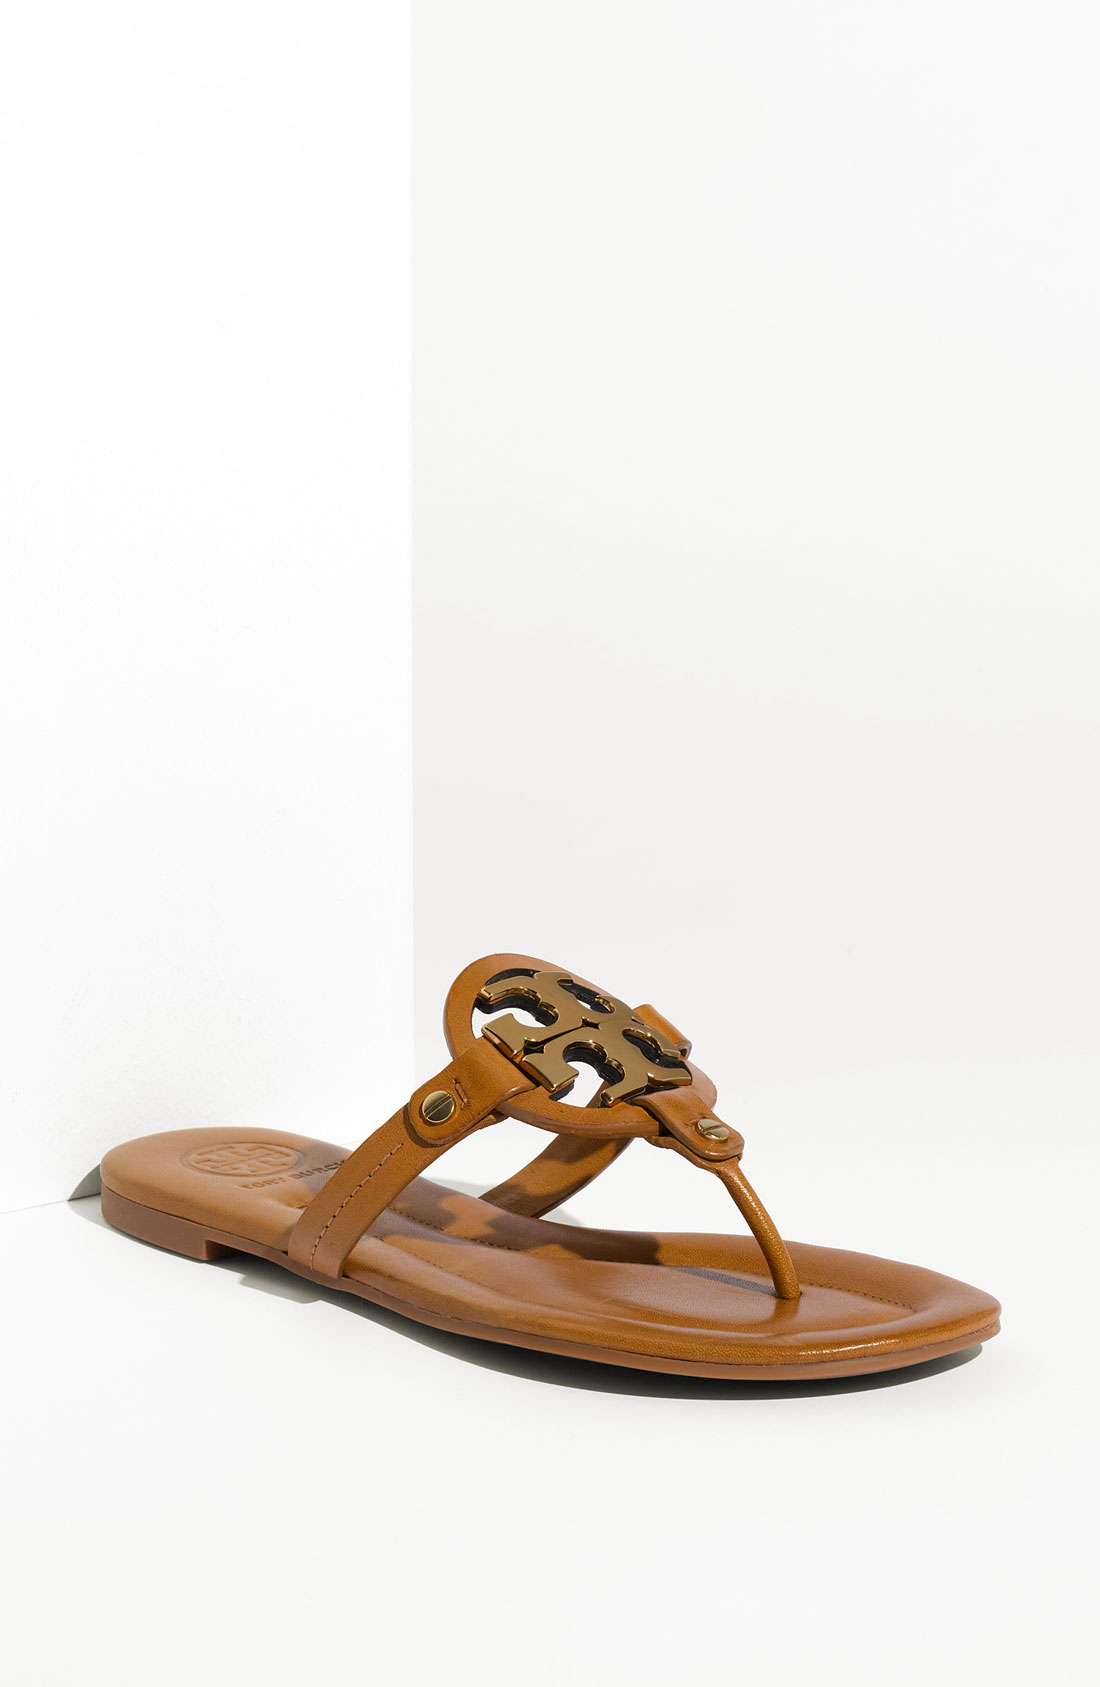 Tory Burch. Miller Leather Thong Sandals. $ (7) QUICK VIEW. Tory Burch. Color Block Platform Espadrilles. Was $ Now $ QUICK VIEW. Tory Burch. Patty Platform Wedge Slide. Was $ Now $ QUICK VIEW. Tory Burch. Bima Espadrille Wedges. Was $ Now $